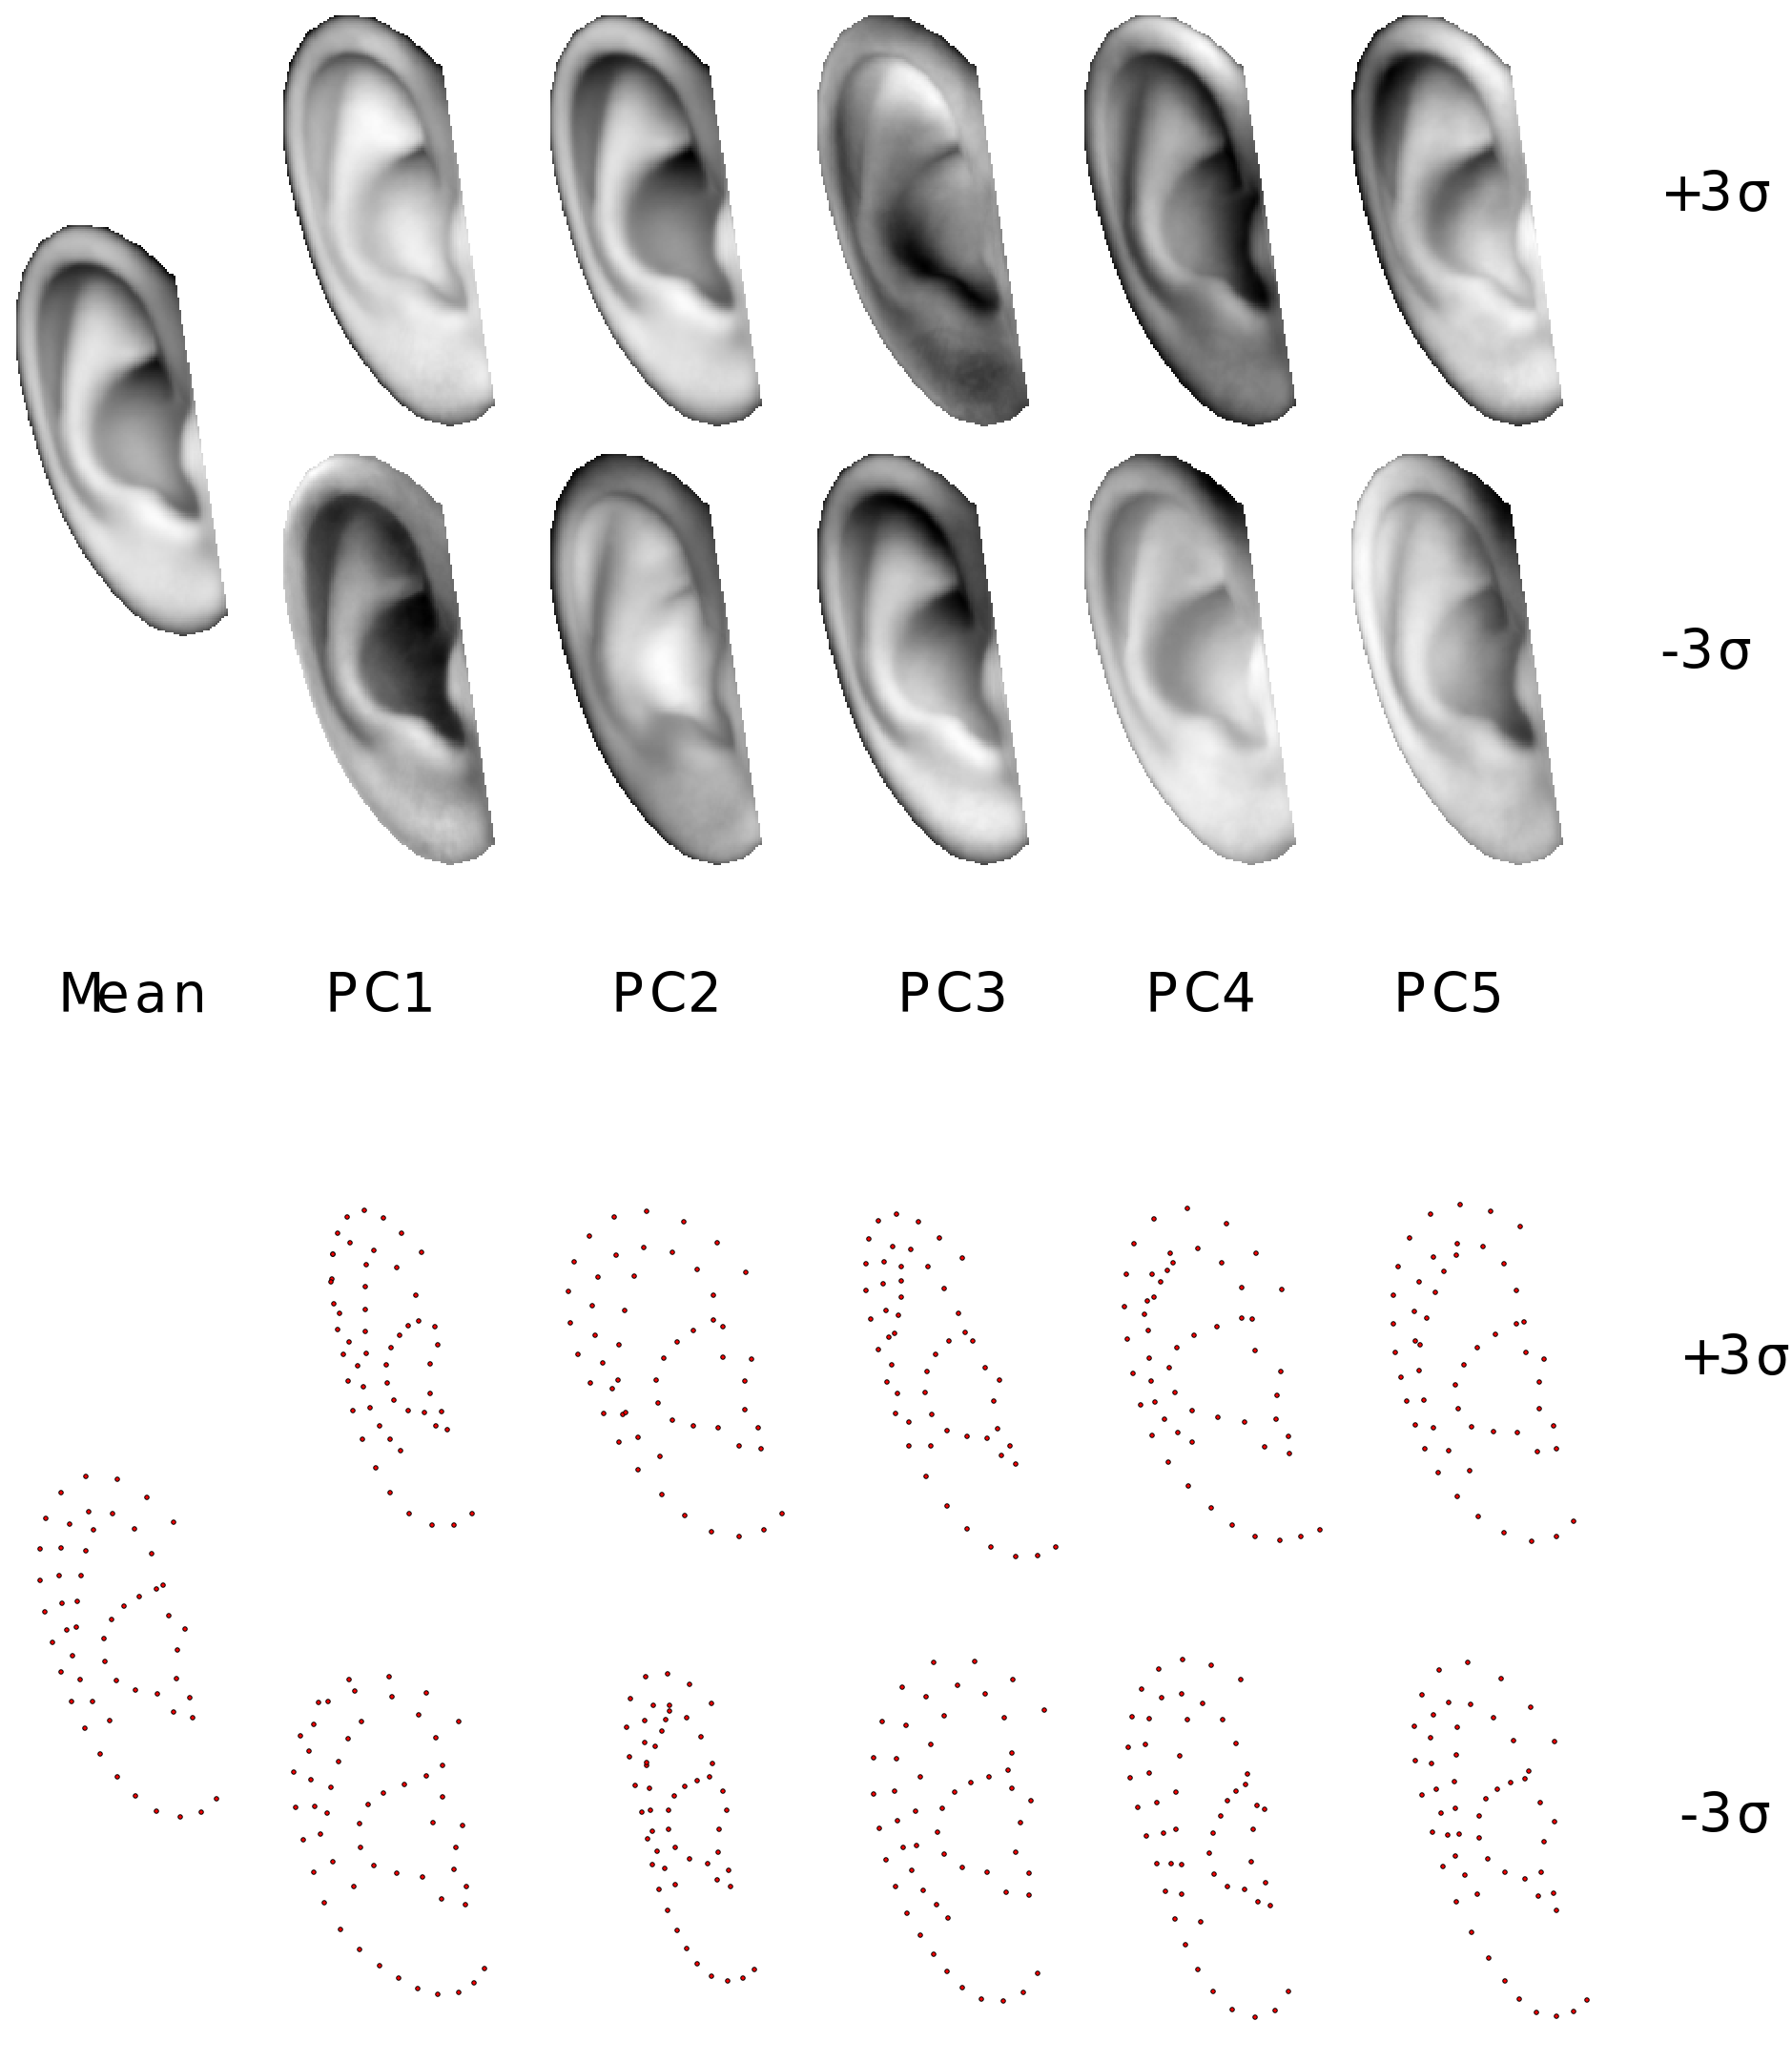 Ibug Resources Deformable Models Of Ears In The Wild For Behavioral State Machines Are Used Active Objects Other Words Fig 1 Exemplar Statistical Shape And Appearance Model Human Ear Figure Visualises First Five Principal Components Variation Both